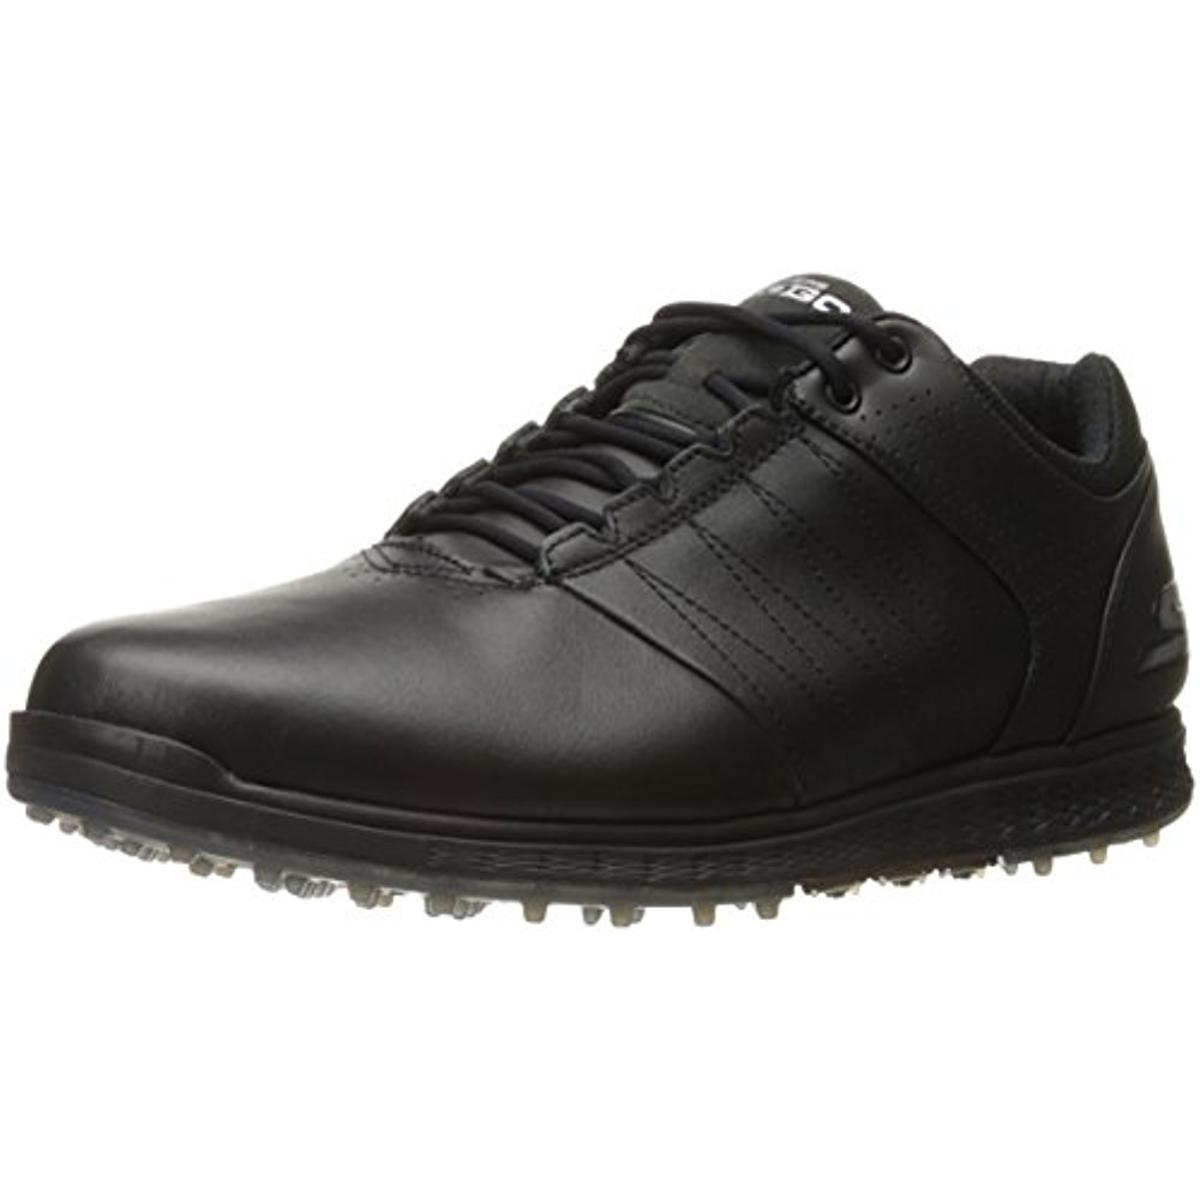 Skechers Mens Go Golf Leather Lightweight Golf Shoes by Skechers